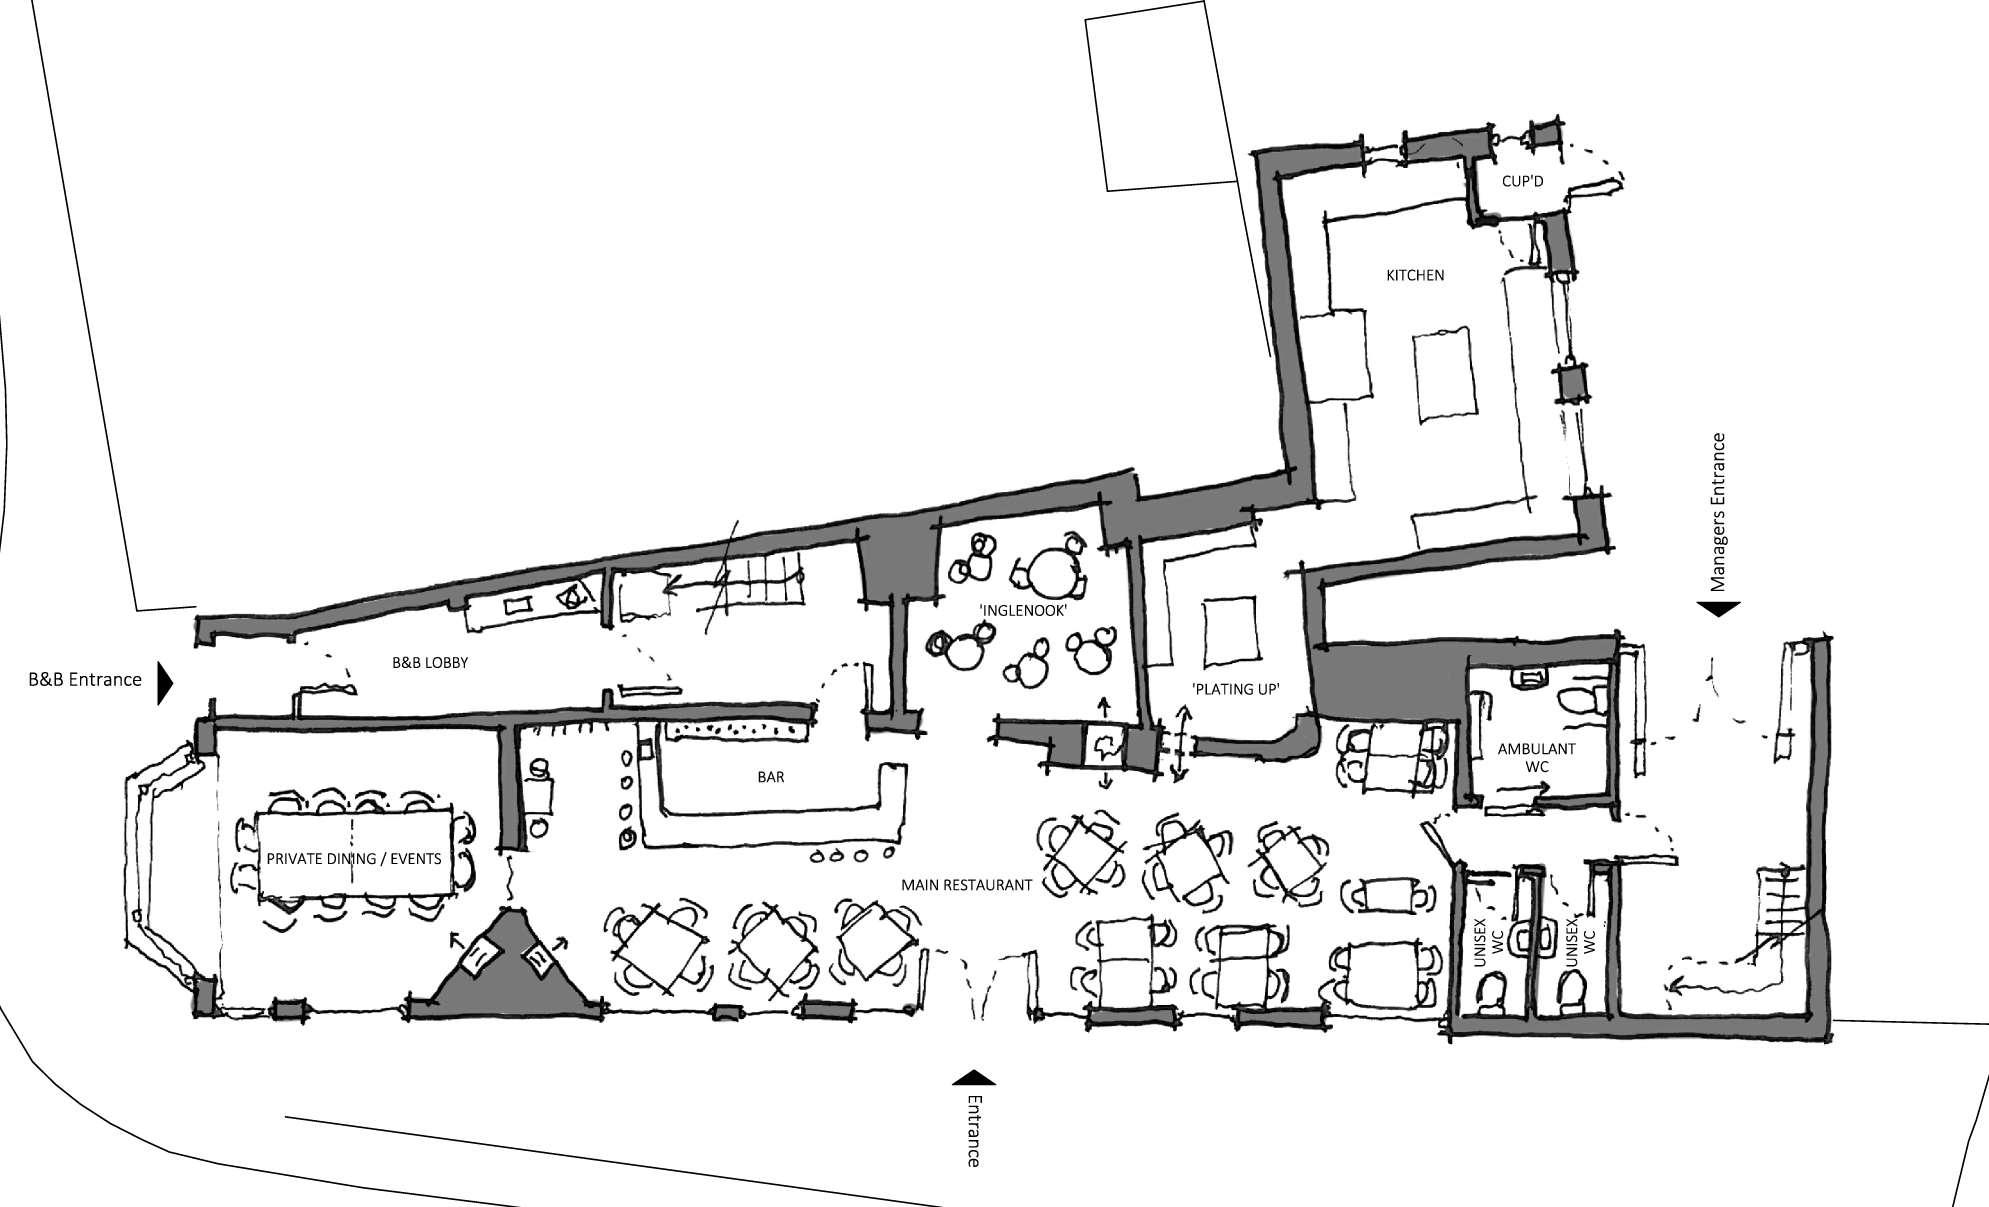 Initial Concept Plan for the Ground Floor